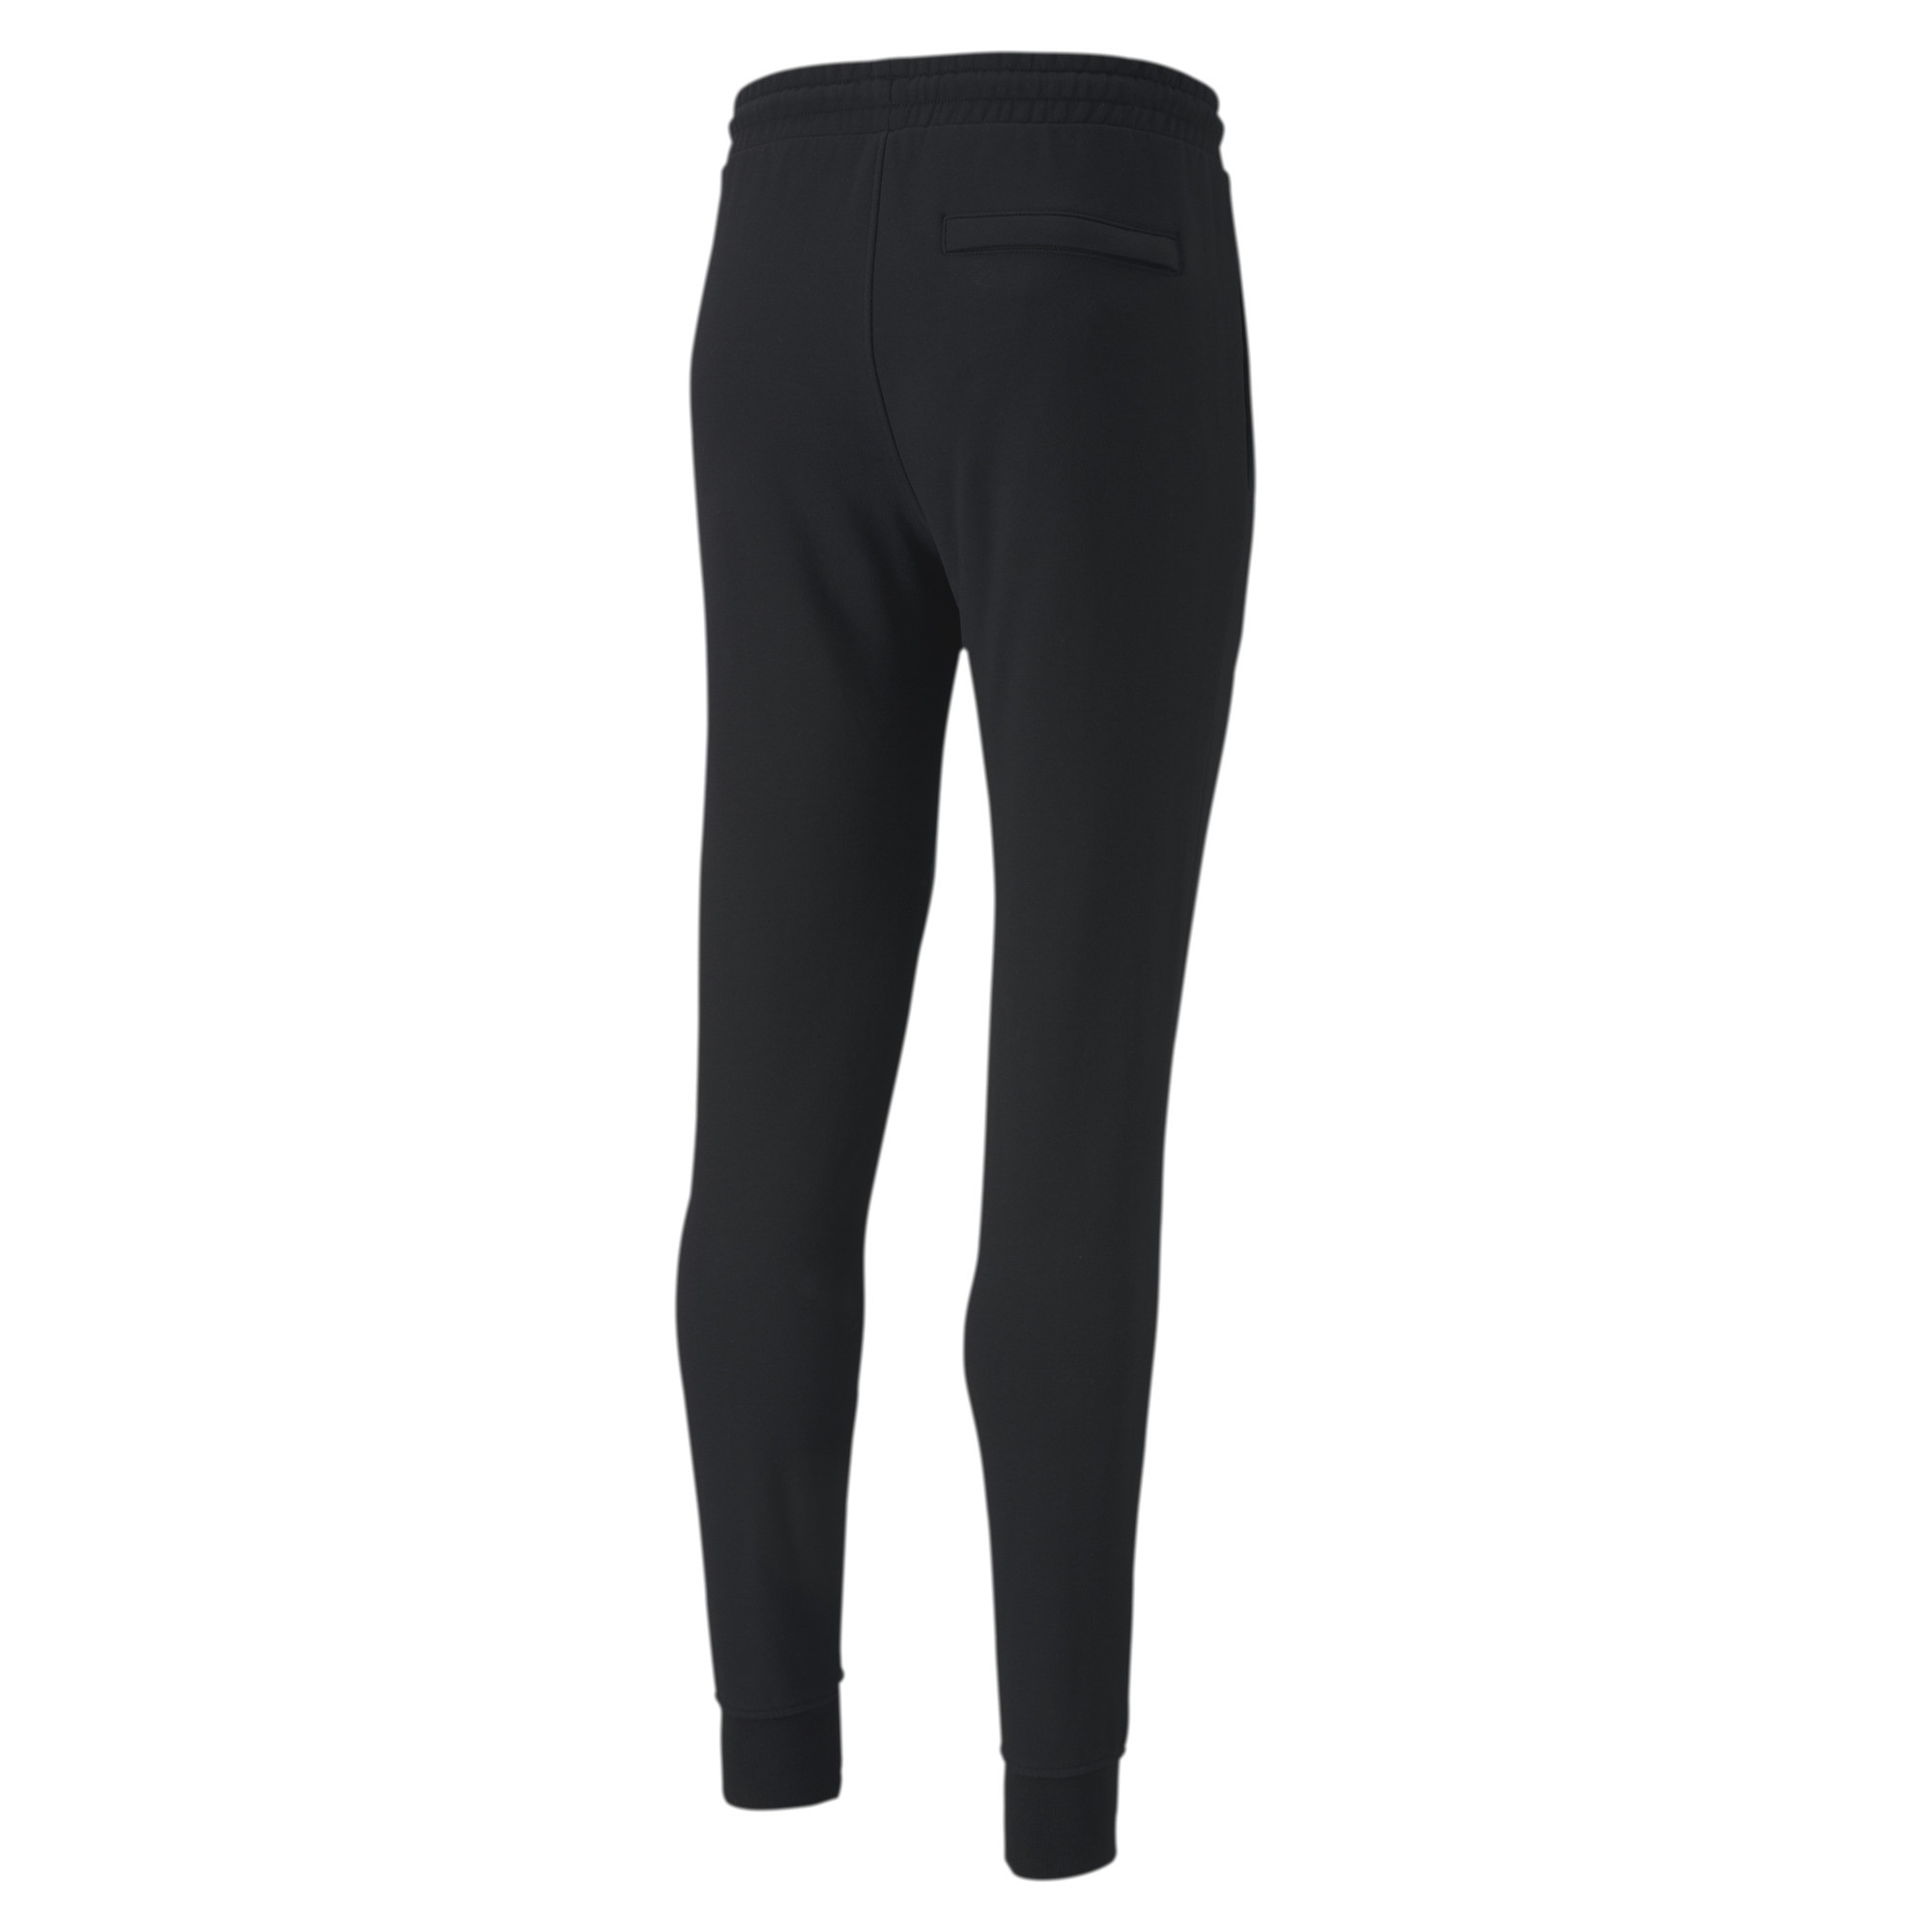 PUMA-Classics-Men-039-s-Cuffed-Sweatpants-Men-Knitted-Pants-Sport-Classics thumbnail 3